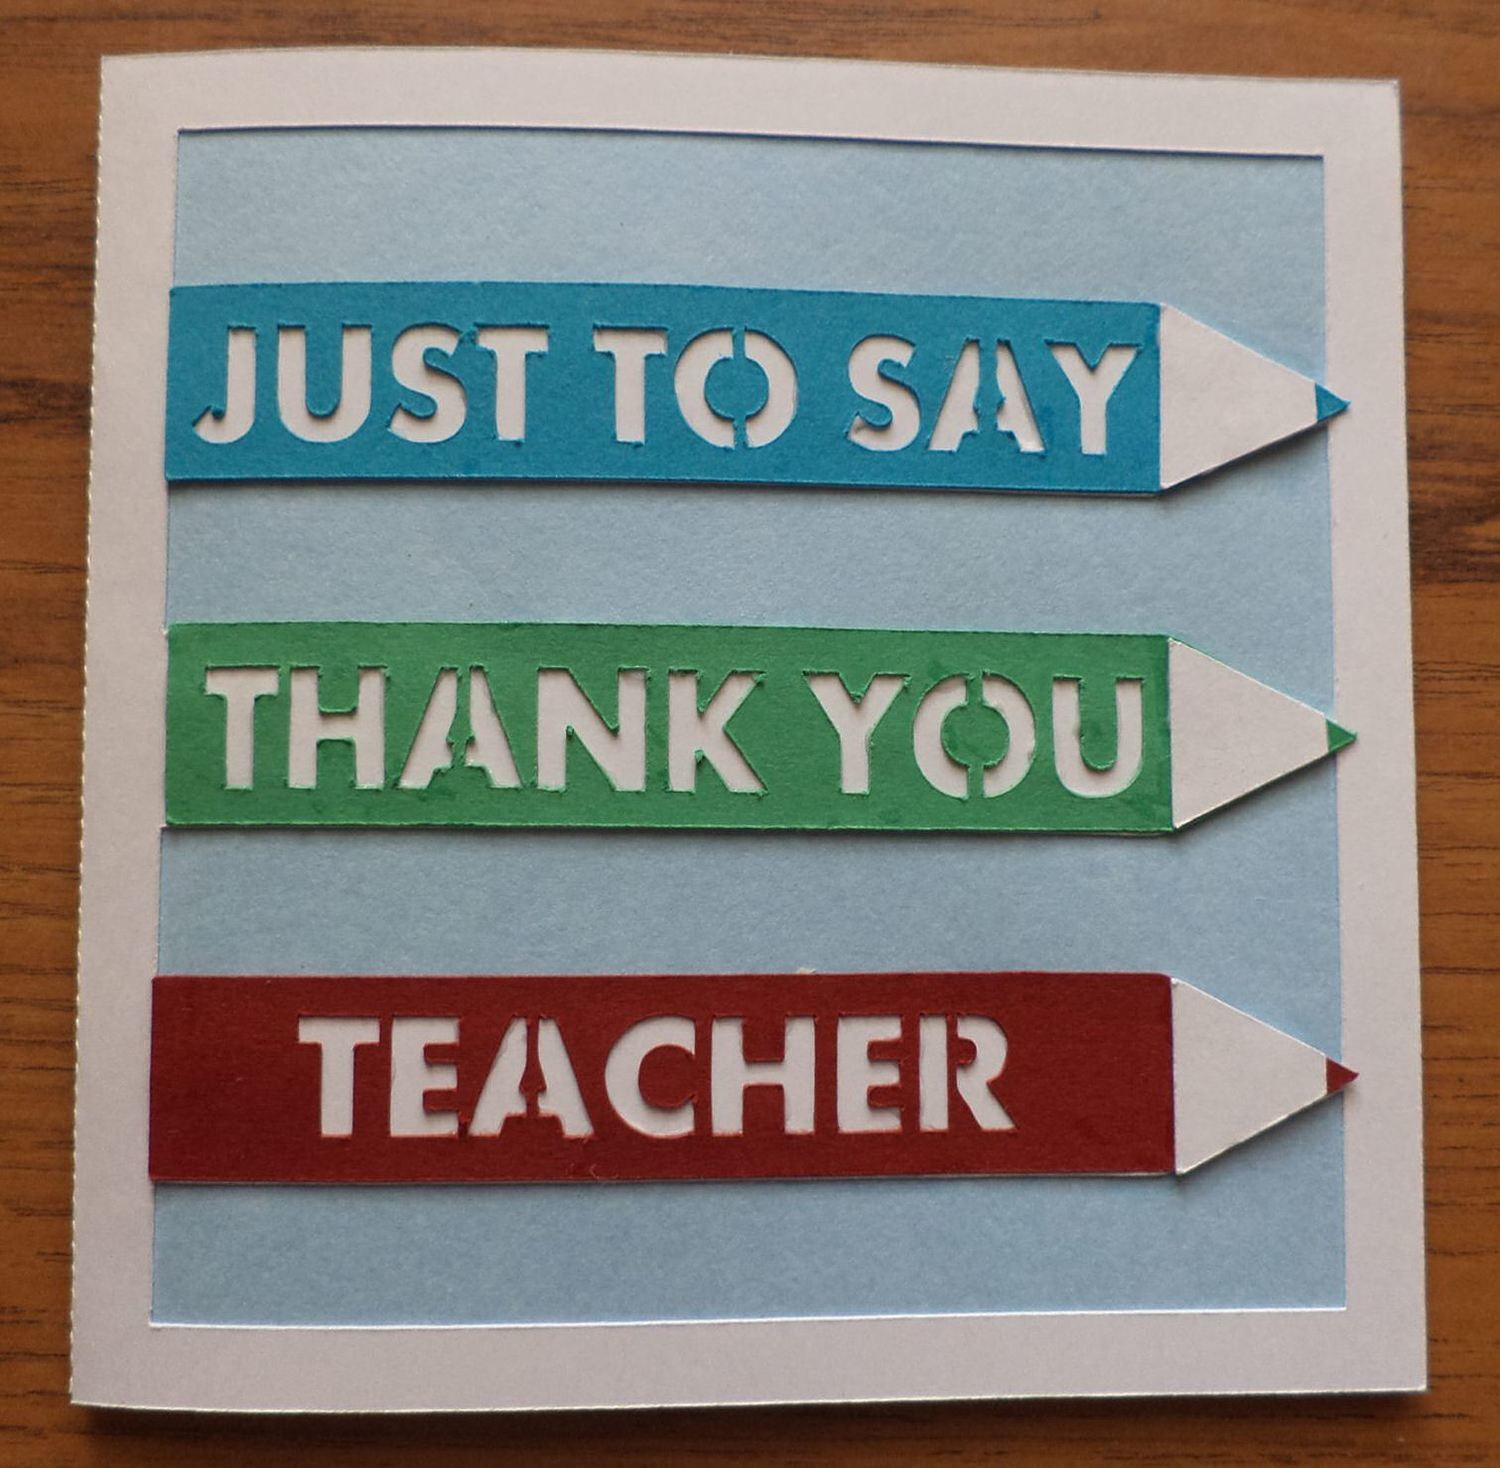 Thank You Teacher layered card template